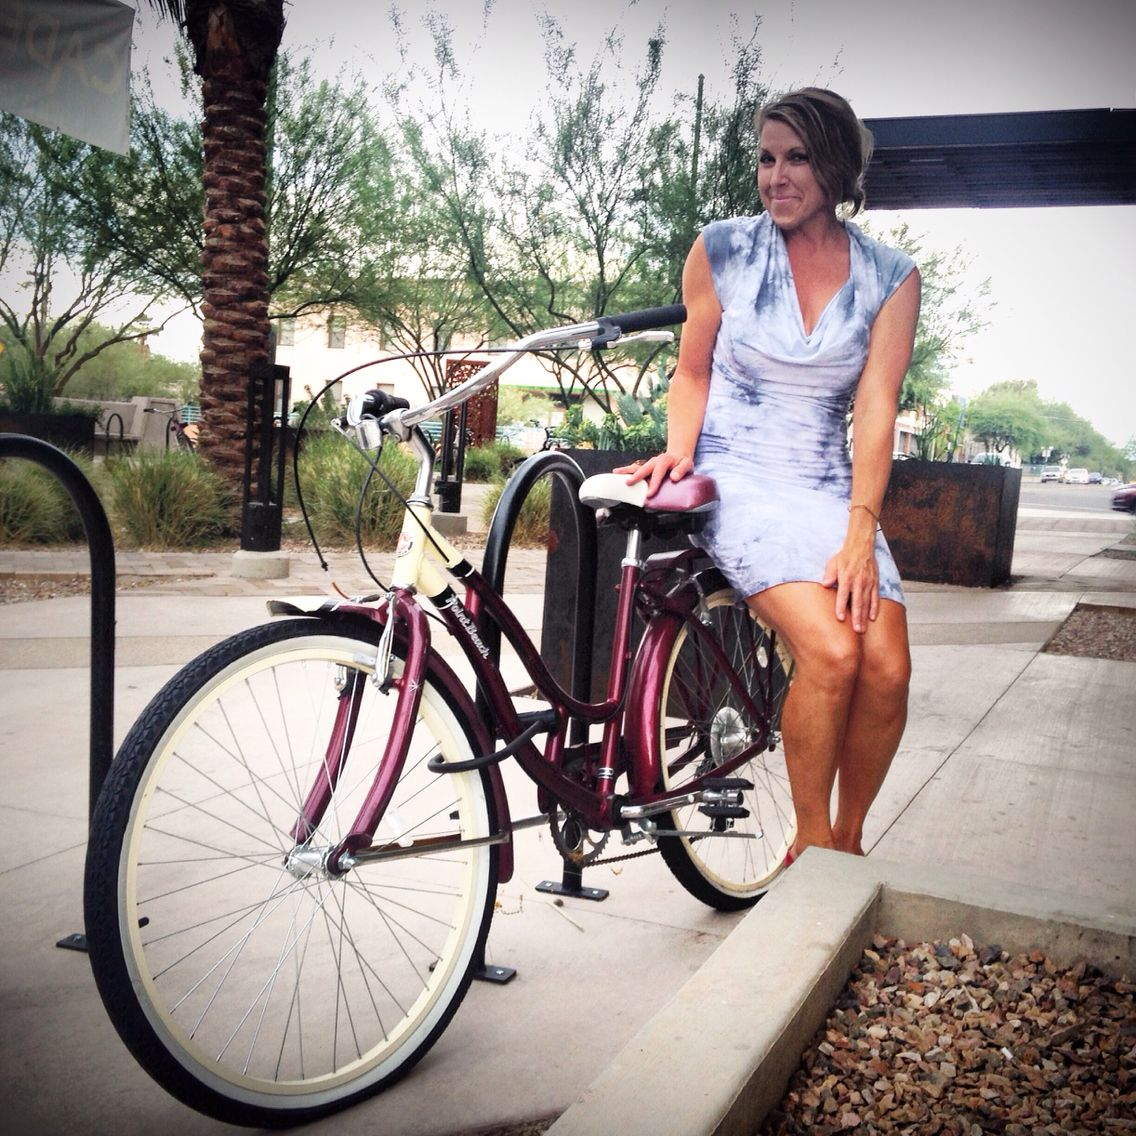 Gals on cruiser bicycles are so darn cute! Carleen is a huge cyclist and loves our organic cowlneck dress made in Los Angeles! Come visit our Tucson clothing store for only American-made women's fashion and we feed 12 emergency meals to Americans in need per item sold! #ethicalfashion #dresses #fashion #organic #madeinamerica #fashionrevolution